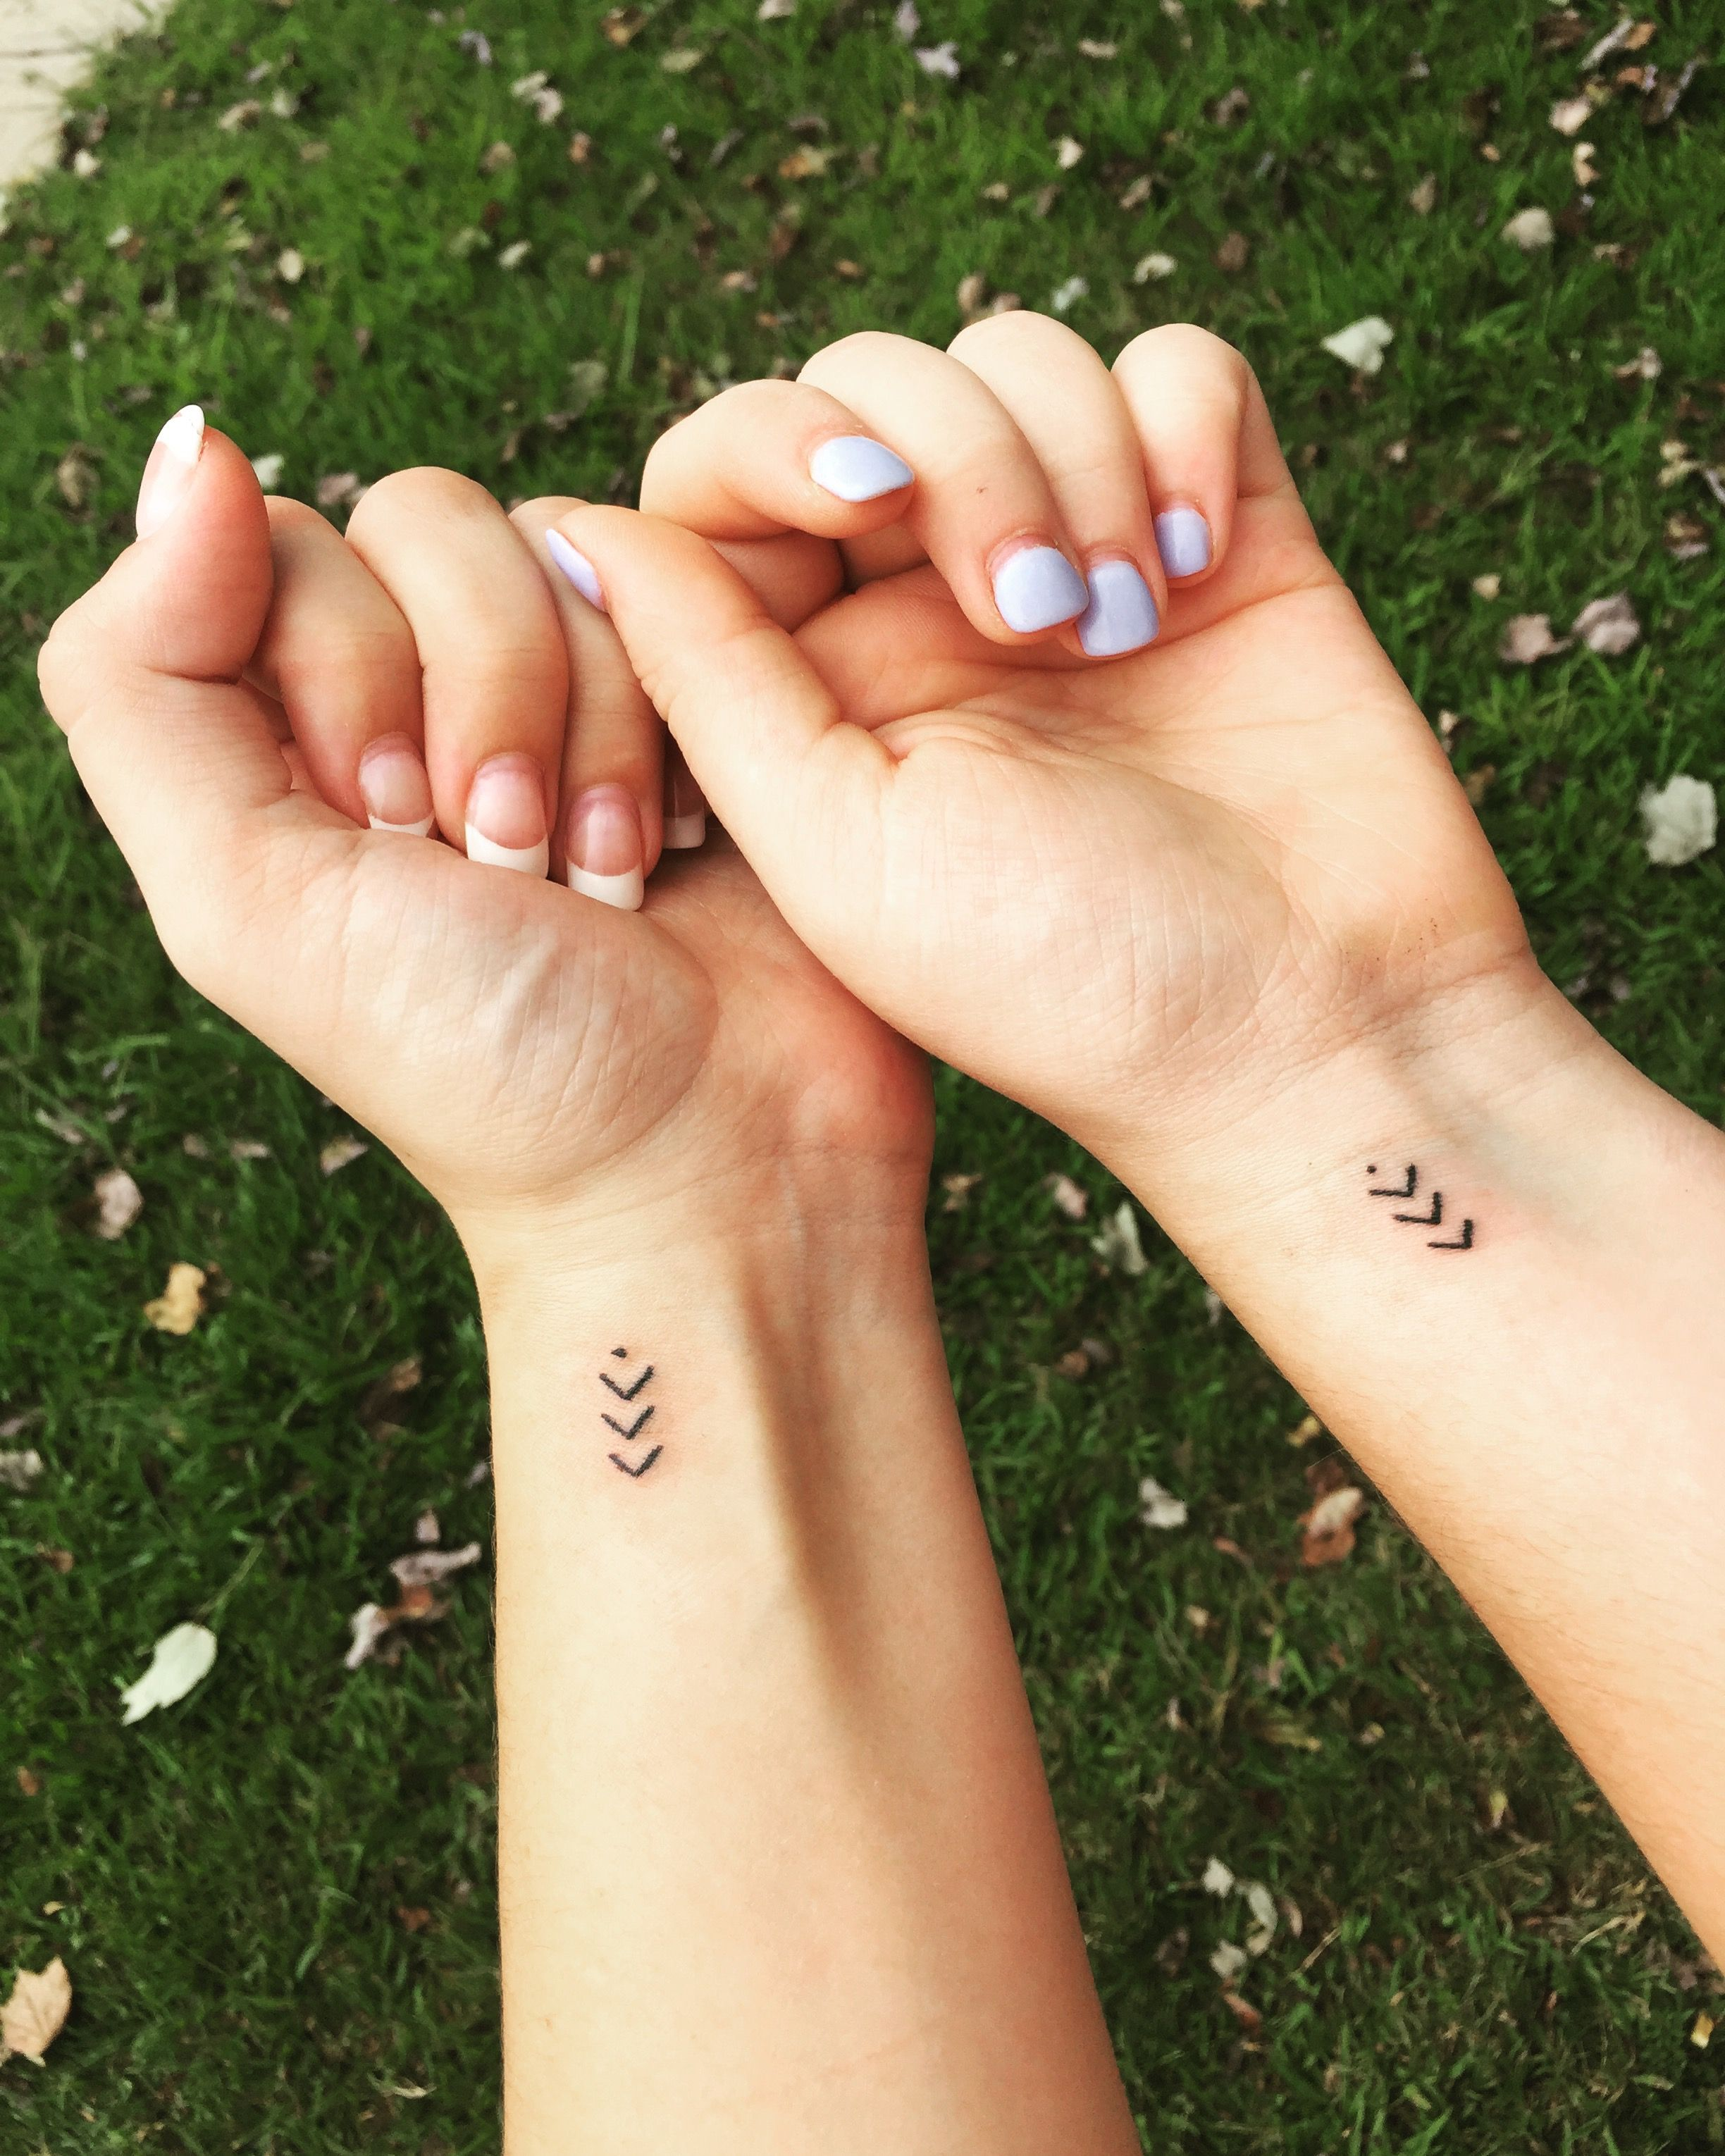 65293e9d75591 21 ideas tattoo matching cousinen for 3. In the past, present, and future,  I will always be there for you #cousins #tattoos #matchingtattoos